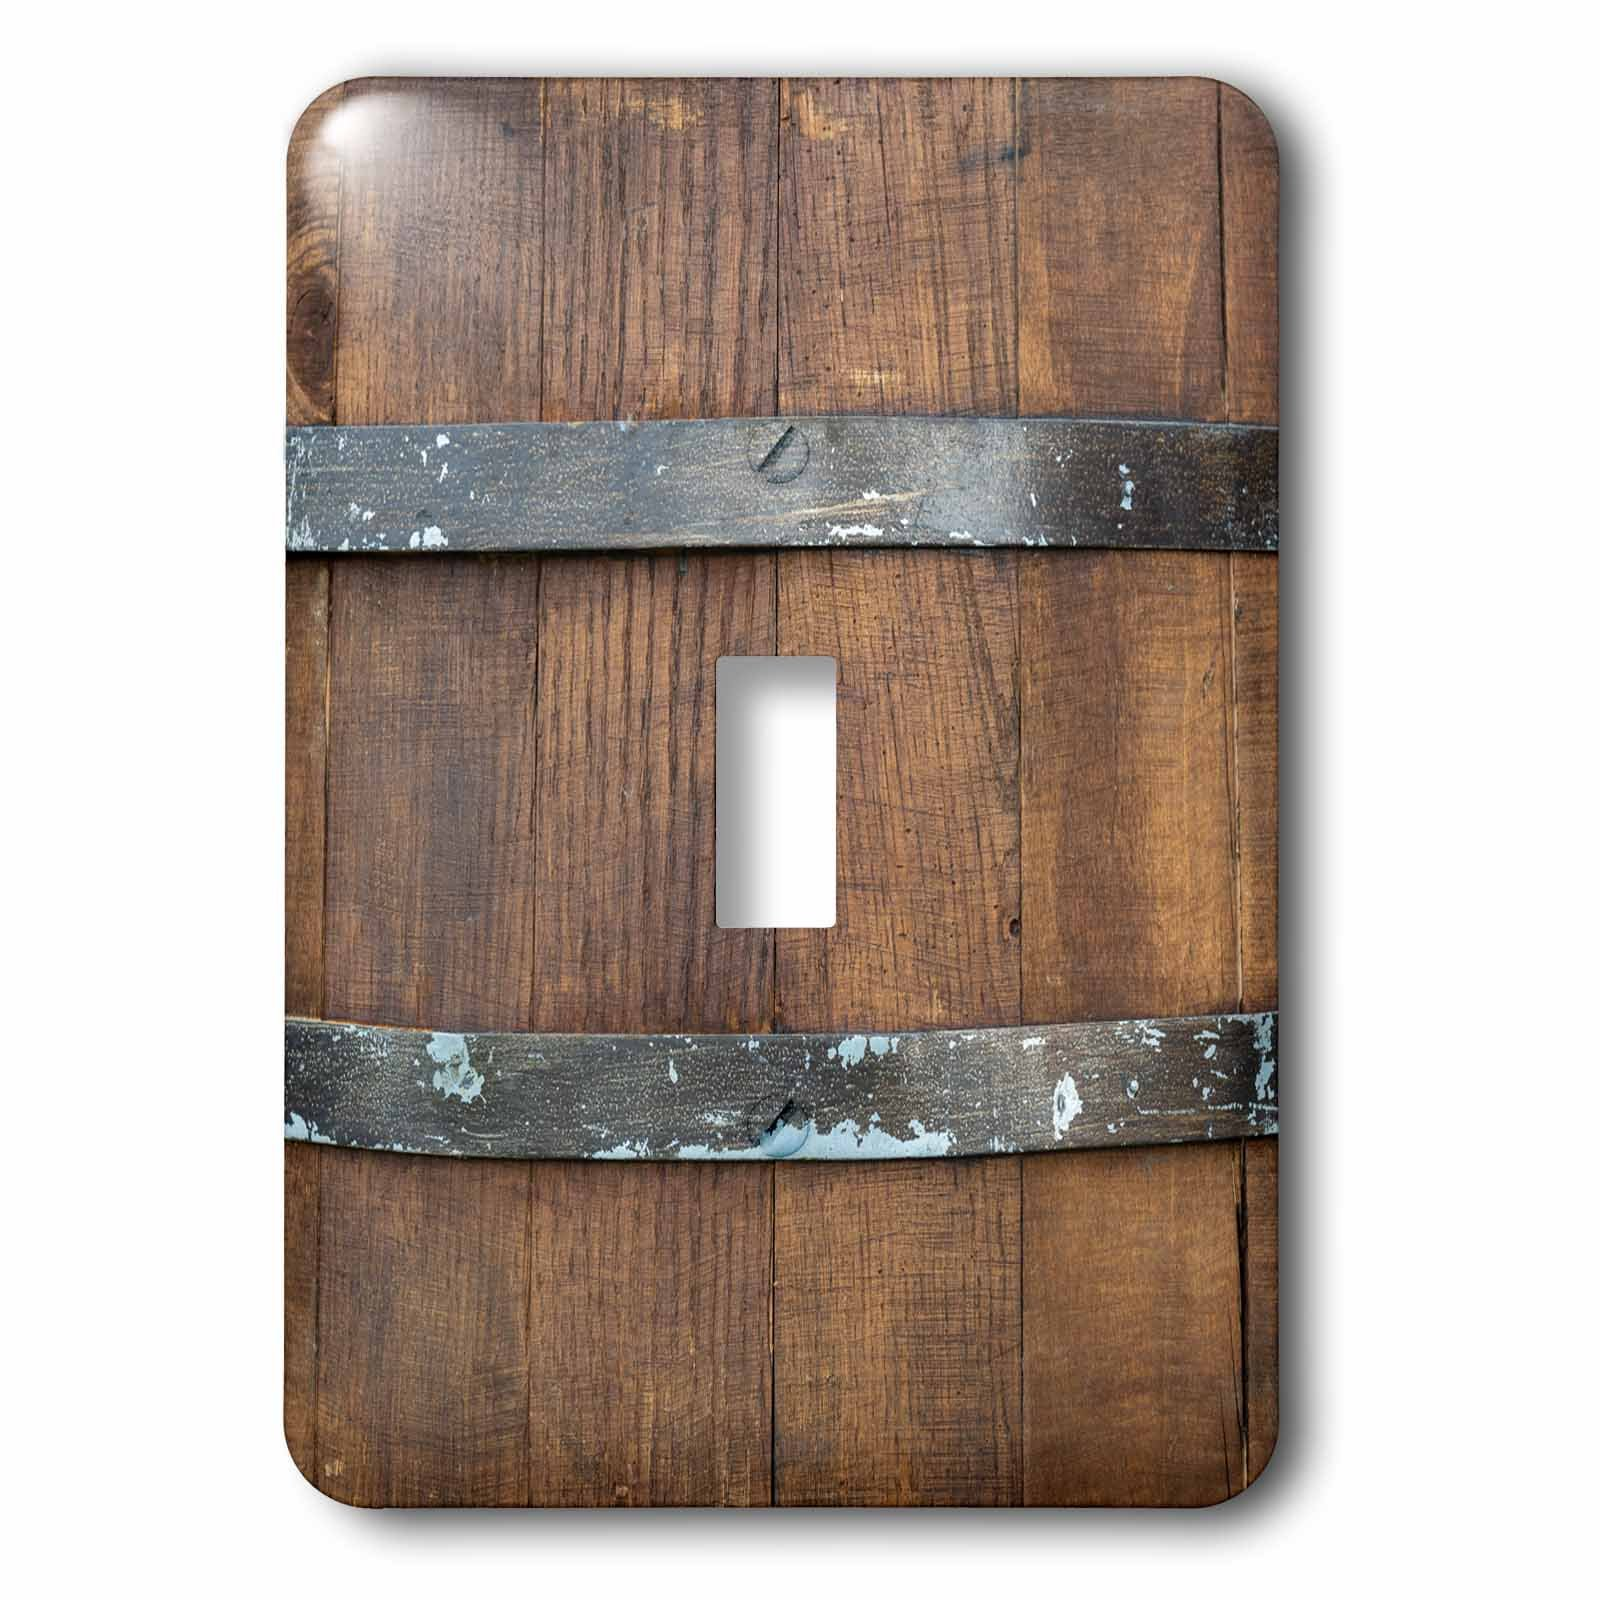 3dRose Alexis Photography - Texture Wood - Image of a wooden barrel, metal bands. Closeup view. Wooden texture - Light Switch Covers - single toggle switch (lsp_286653_1)